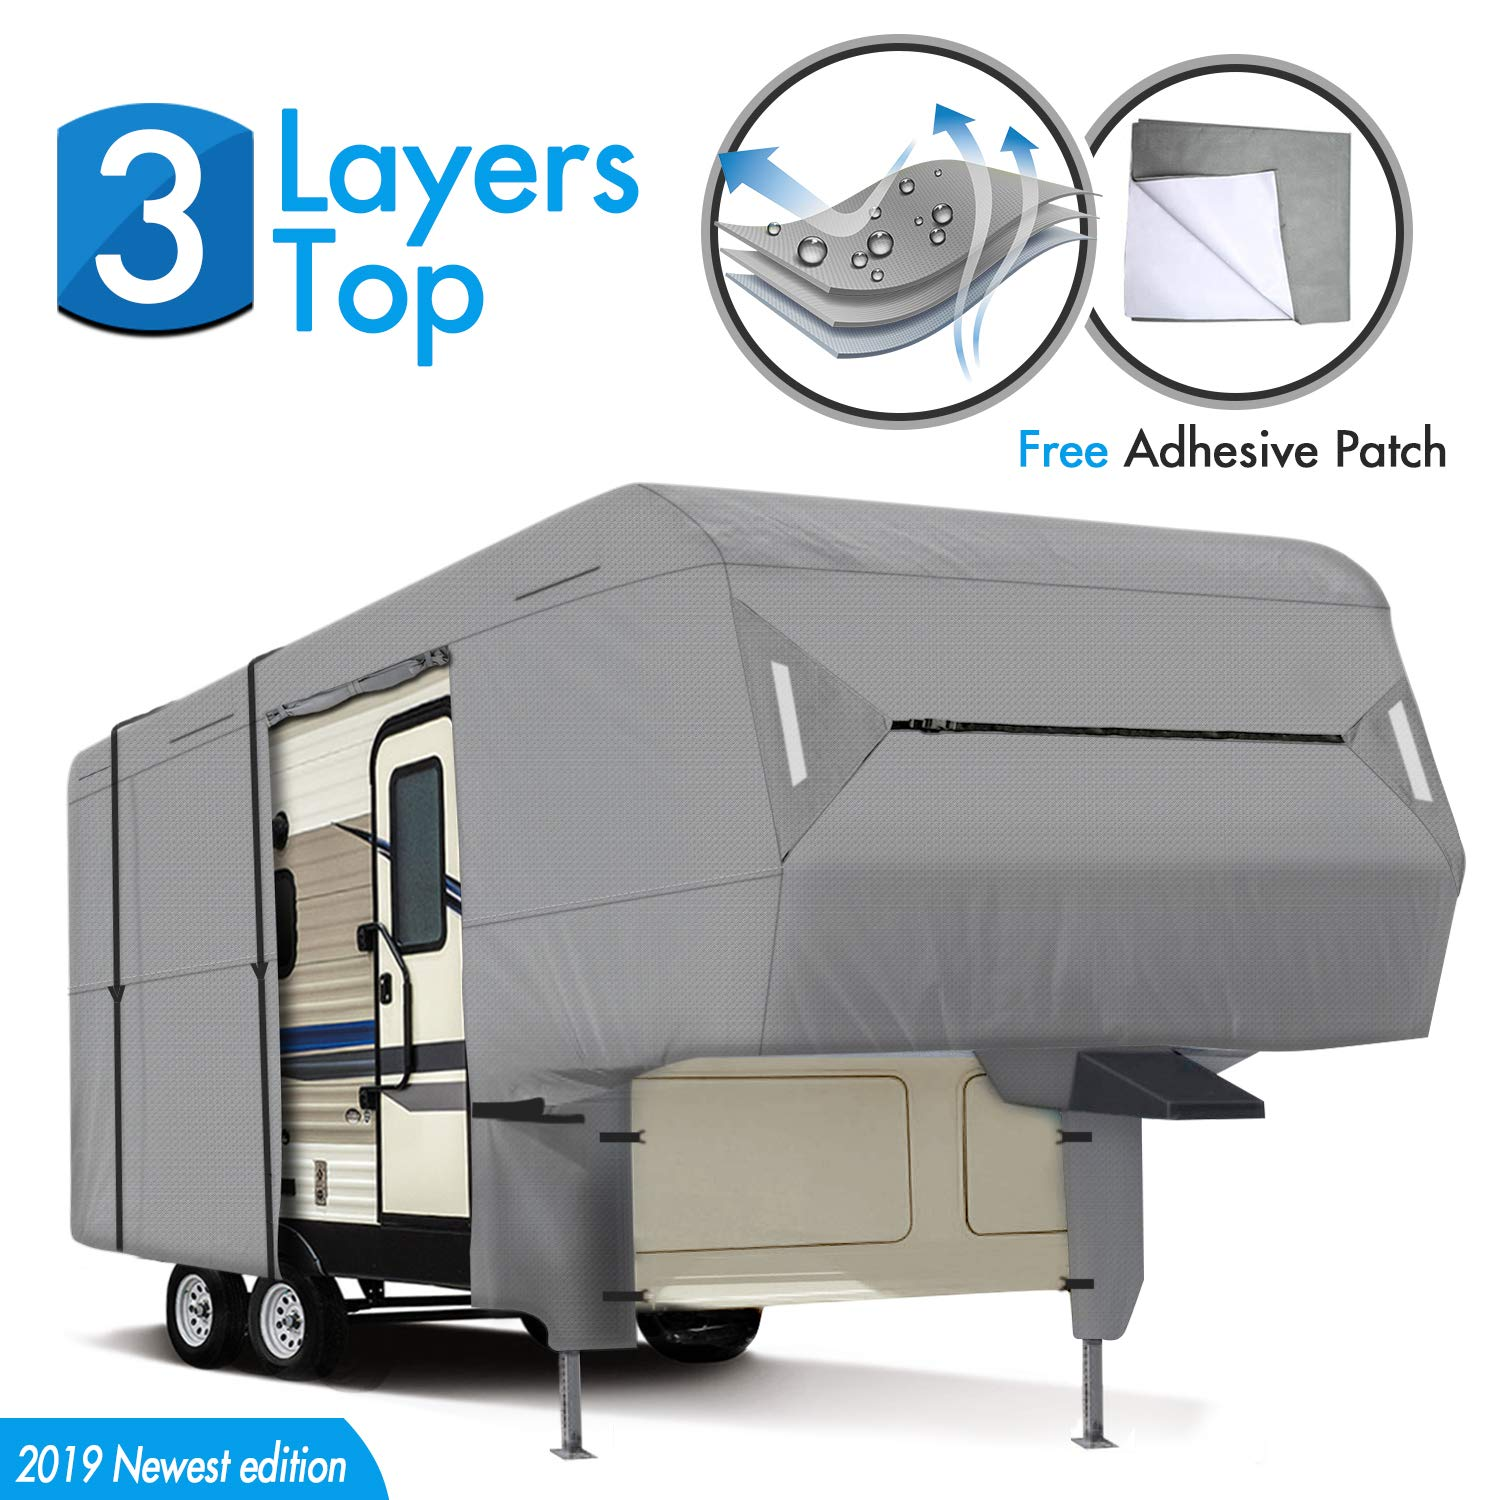 XGEAR 5th Wheel RV Cover 33'-37' Thick 3-Ply Top Panel - Ripstop Waterproof RVs Covers by XGEAR